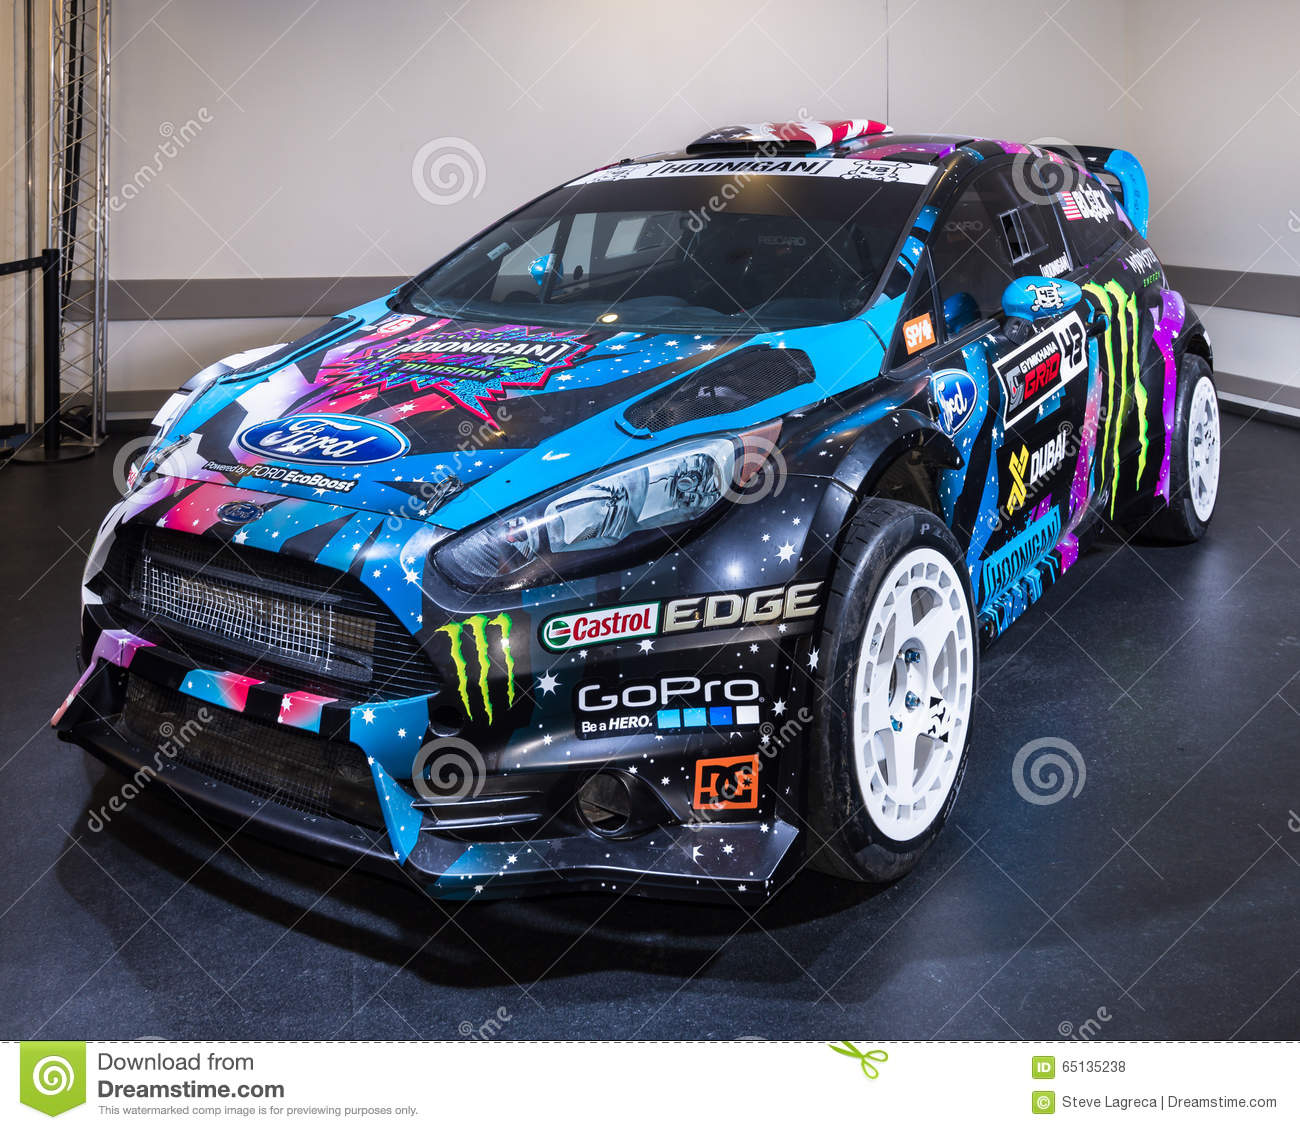 ford fiesta st 2013 rx43 ken block rallycross redaktionelles stockfoto bild 65135238. Black Bedroom Furniture Sets. Home Design Ideas